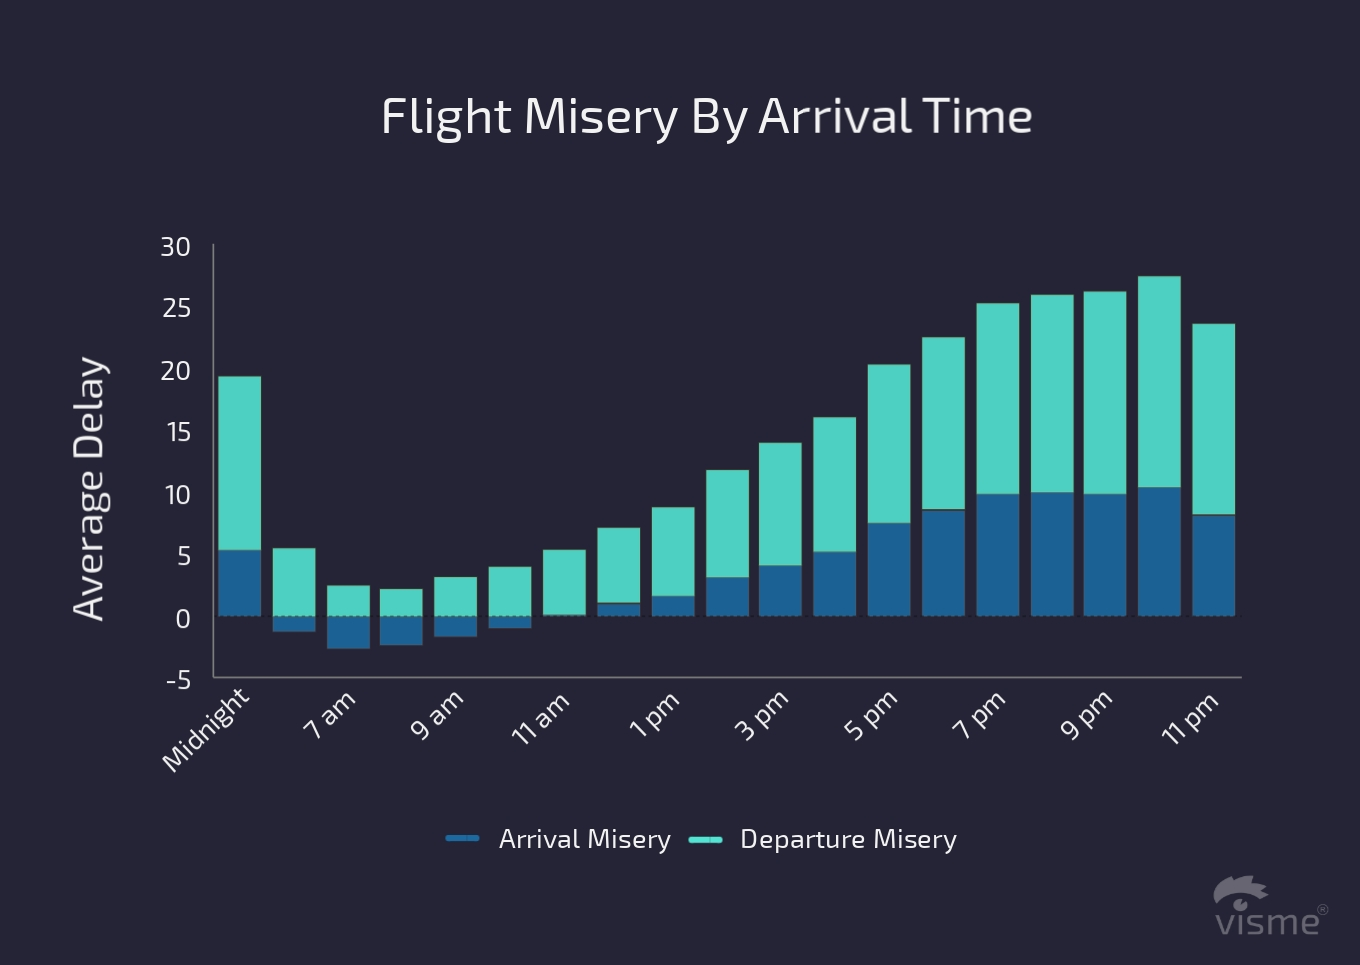 17 Charts on the State of the U.S. Airline Industry in 2017 flight misery by arrival time flight on time performance